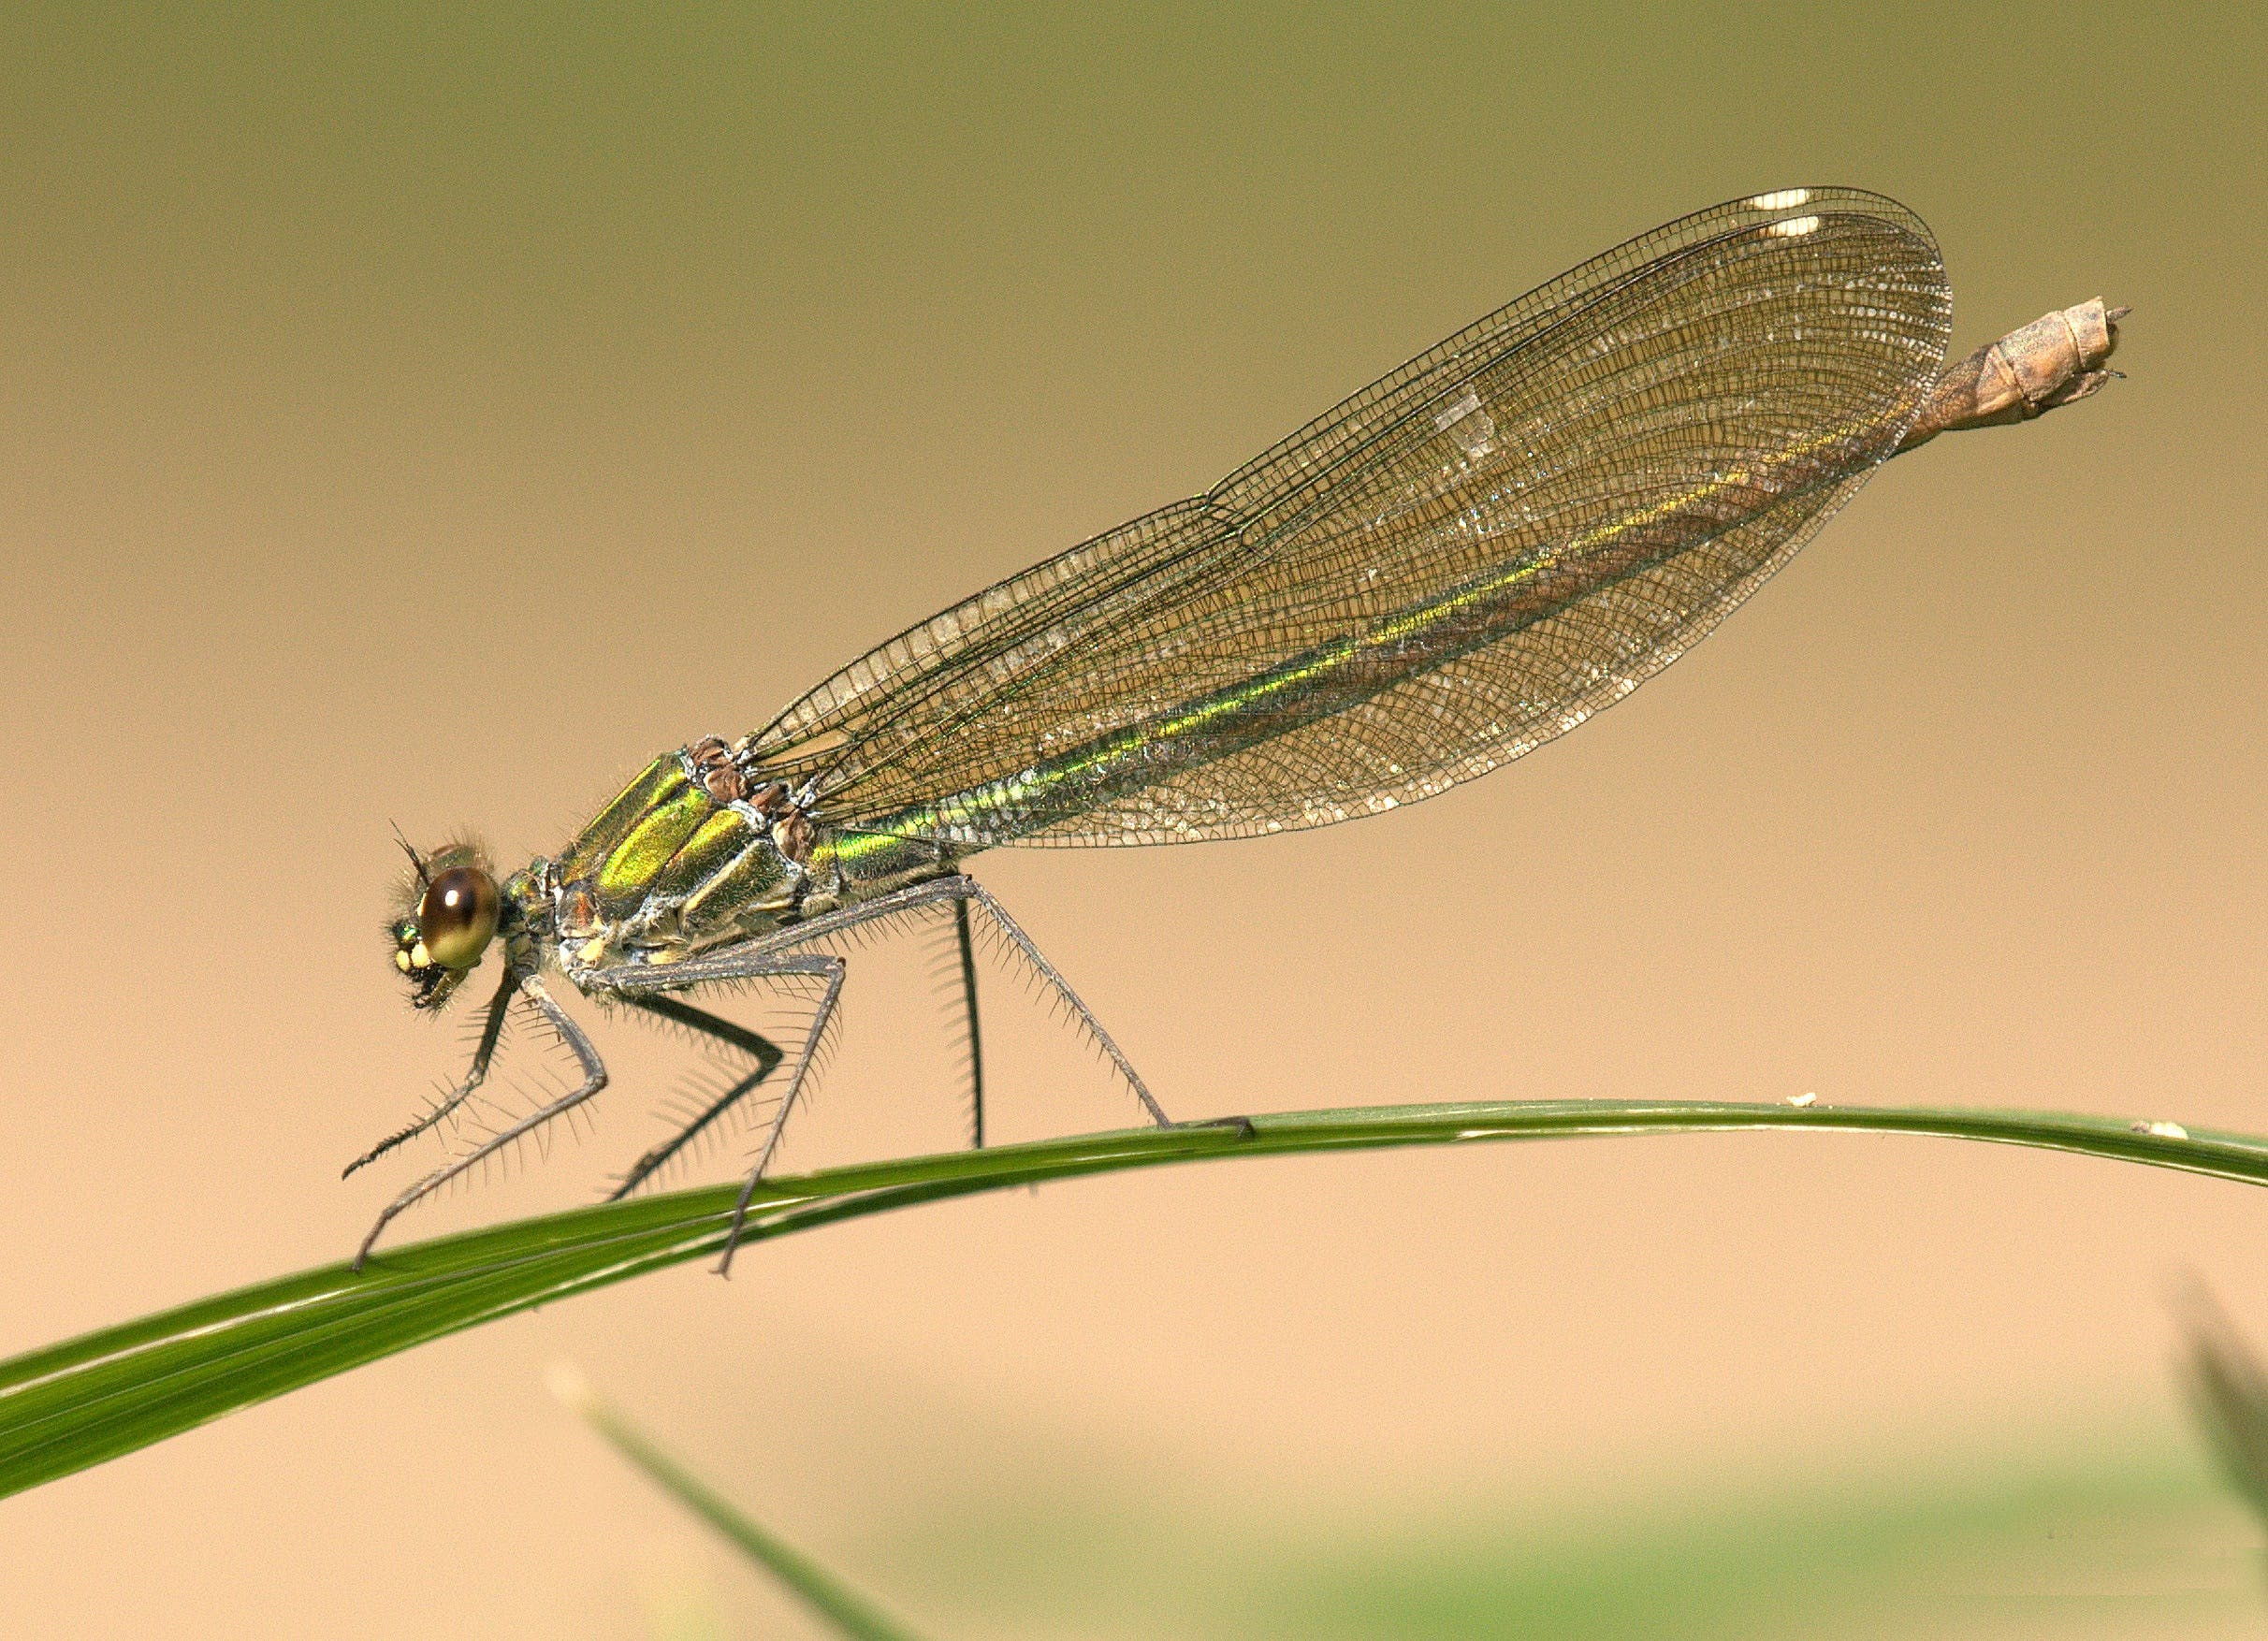 Green Dragonfly on Green Grass